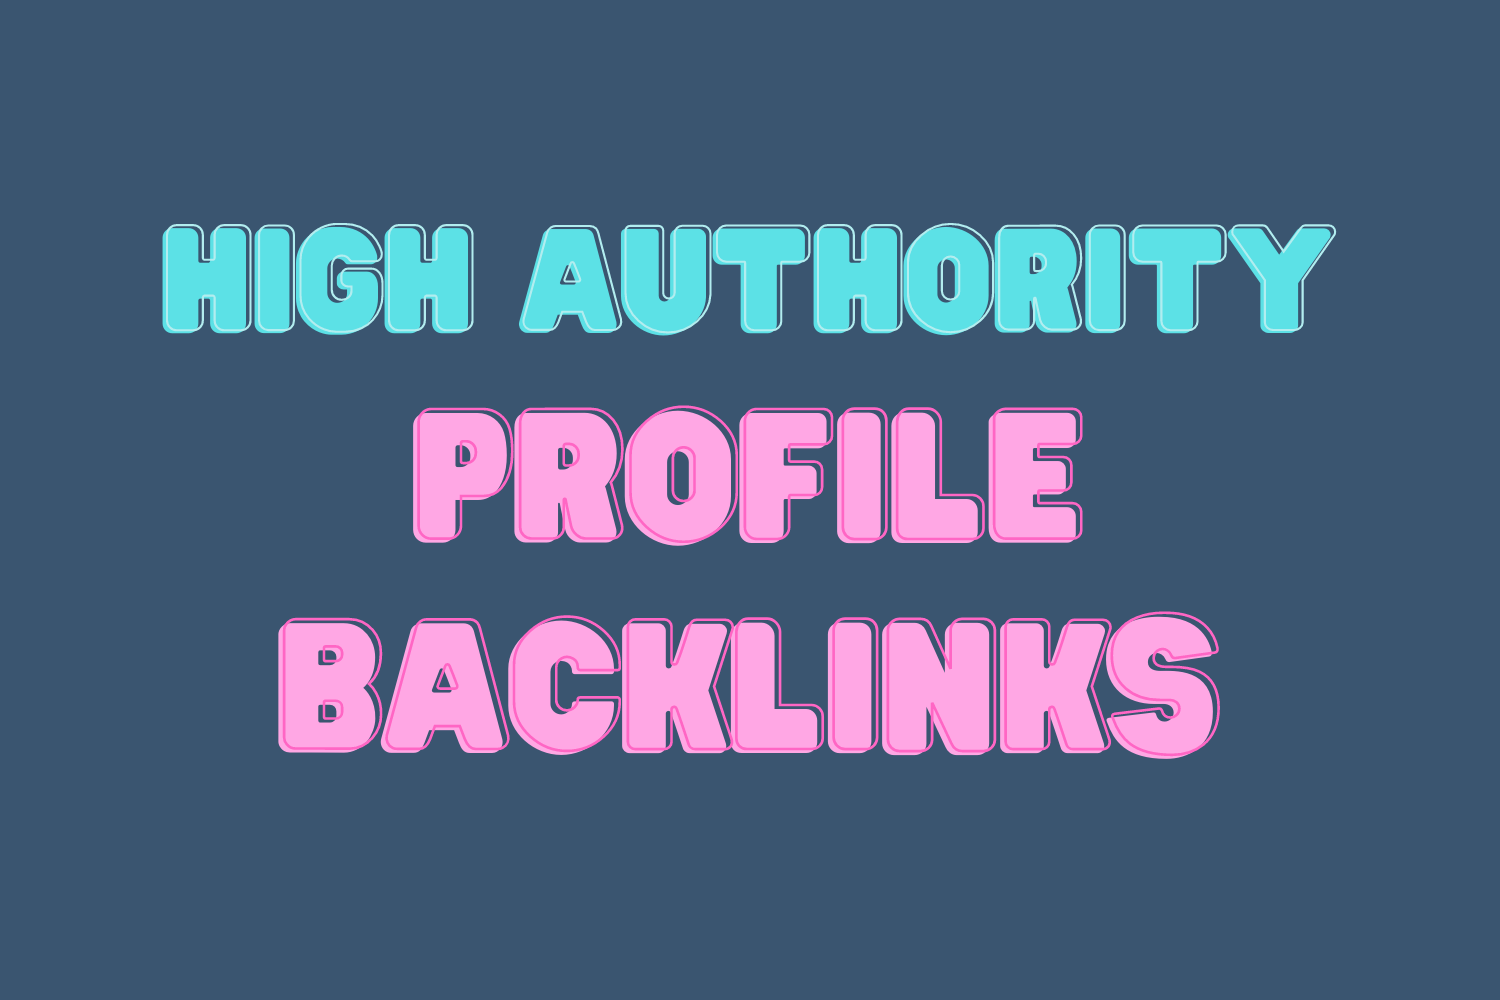 I will build 50 high authority profile backlinks to Rank High on google